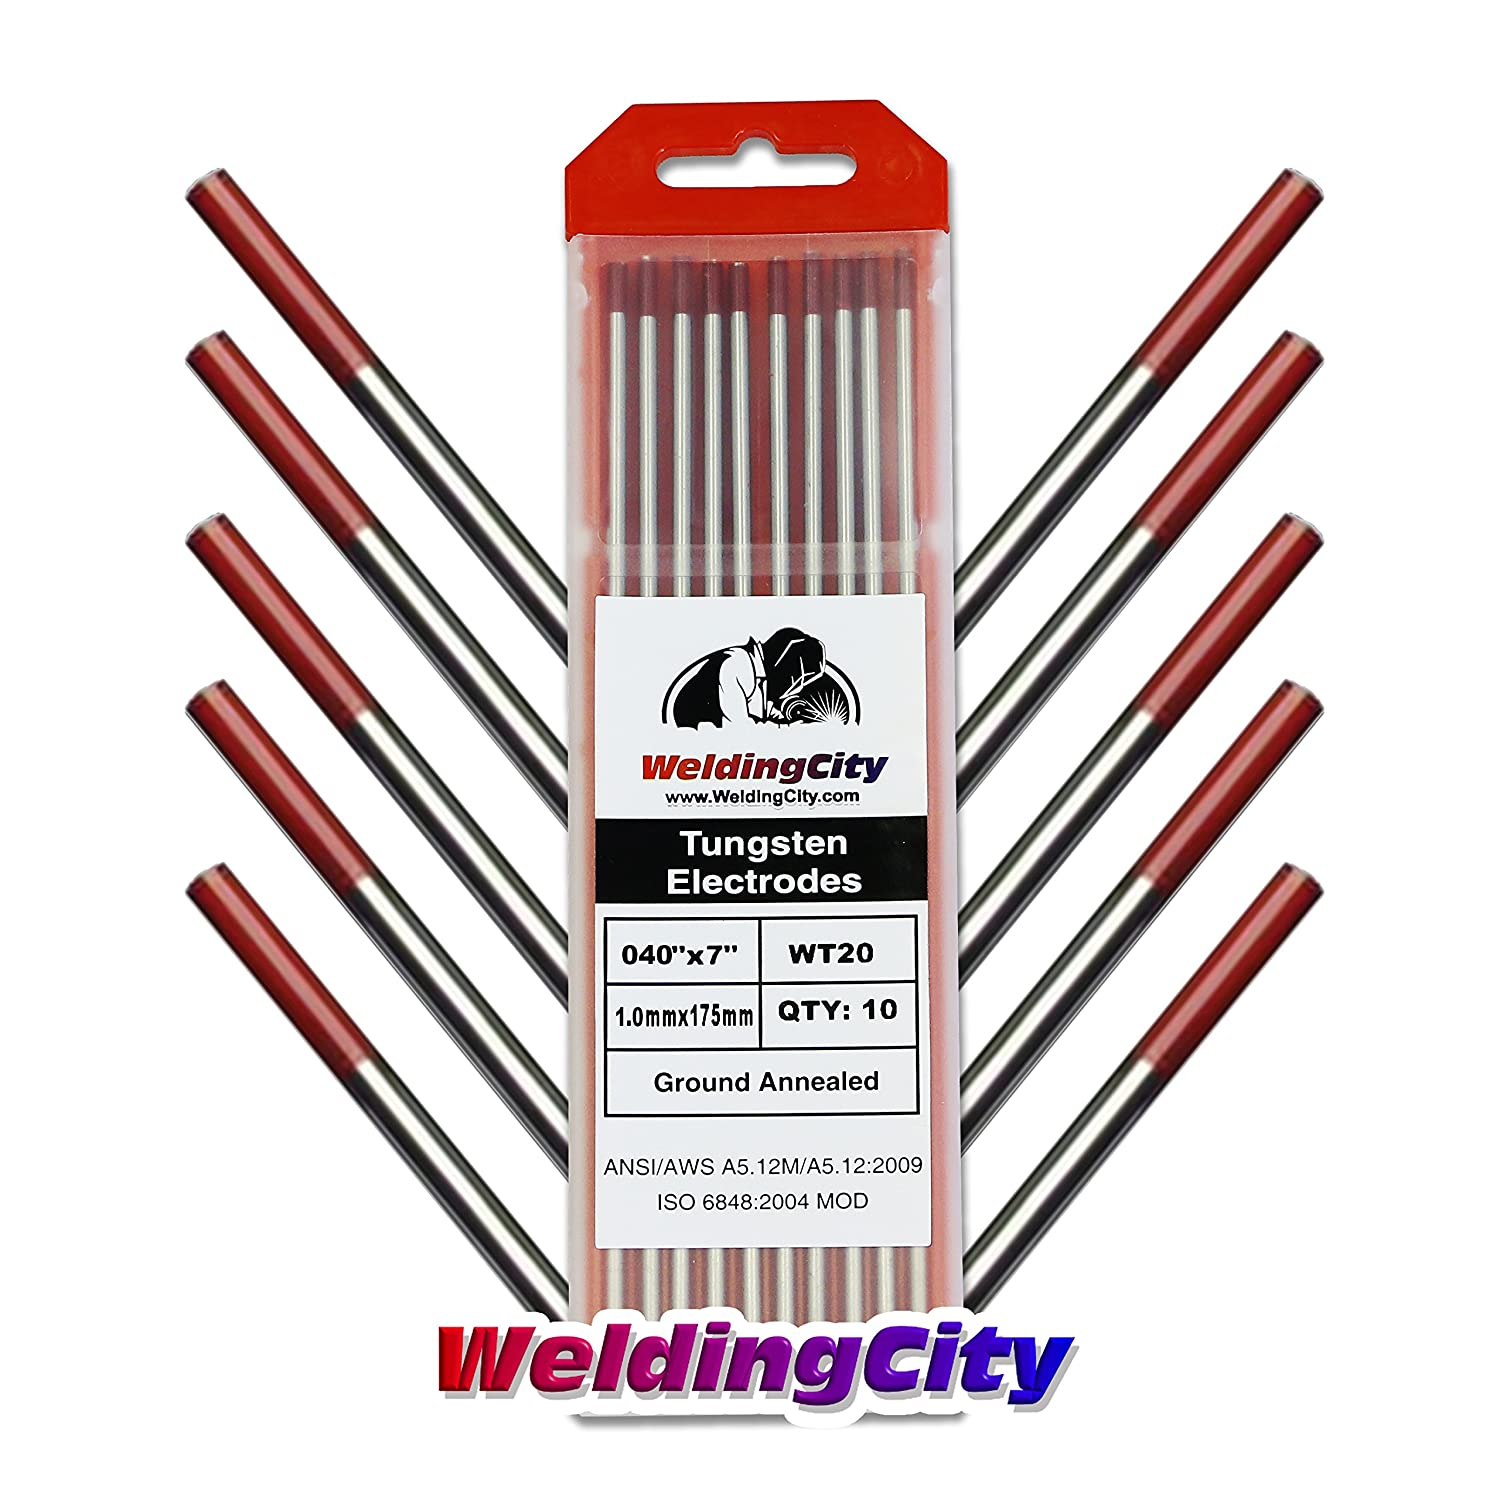 1//16 x 7 10-pcs Red, EWTh20 WeldingCity 10-pk Premium TIG Welding Tungsten Electrode Rod 2.0/% Thoriated 1//16 x 7 | 10-pcs EWTh20